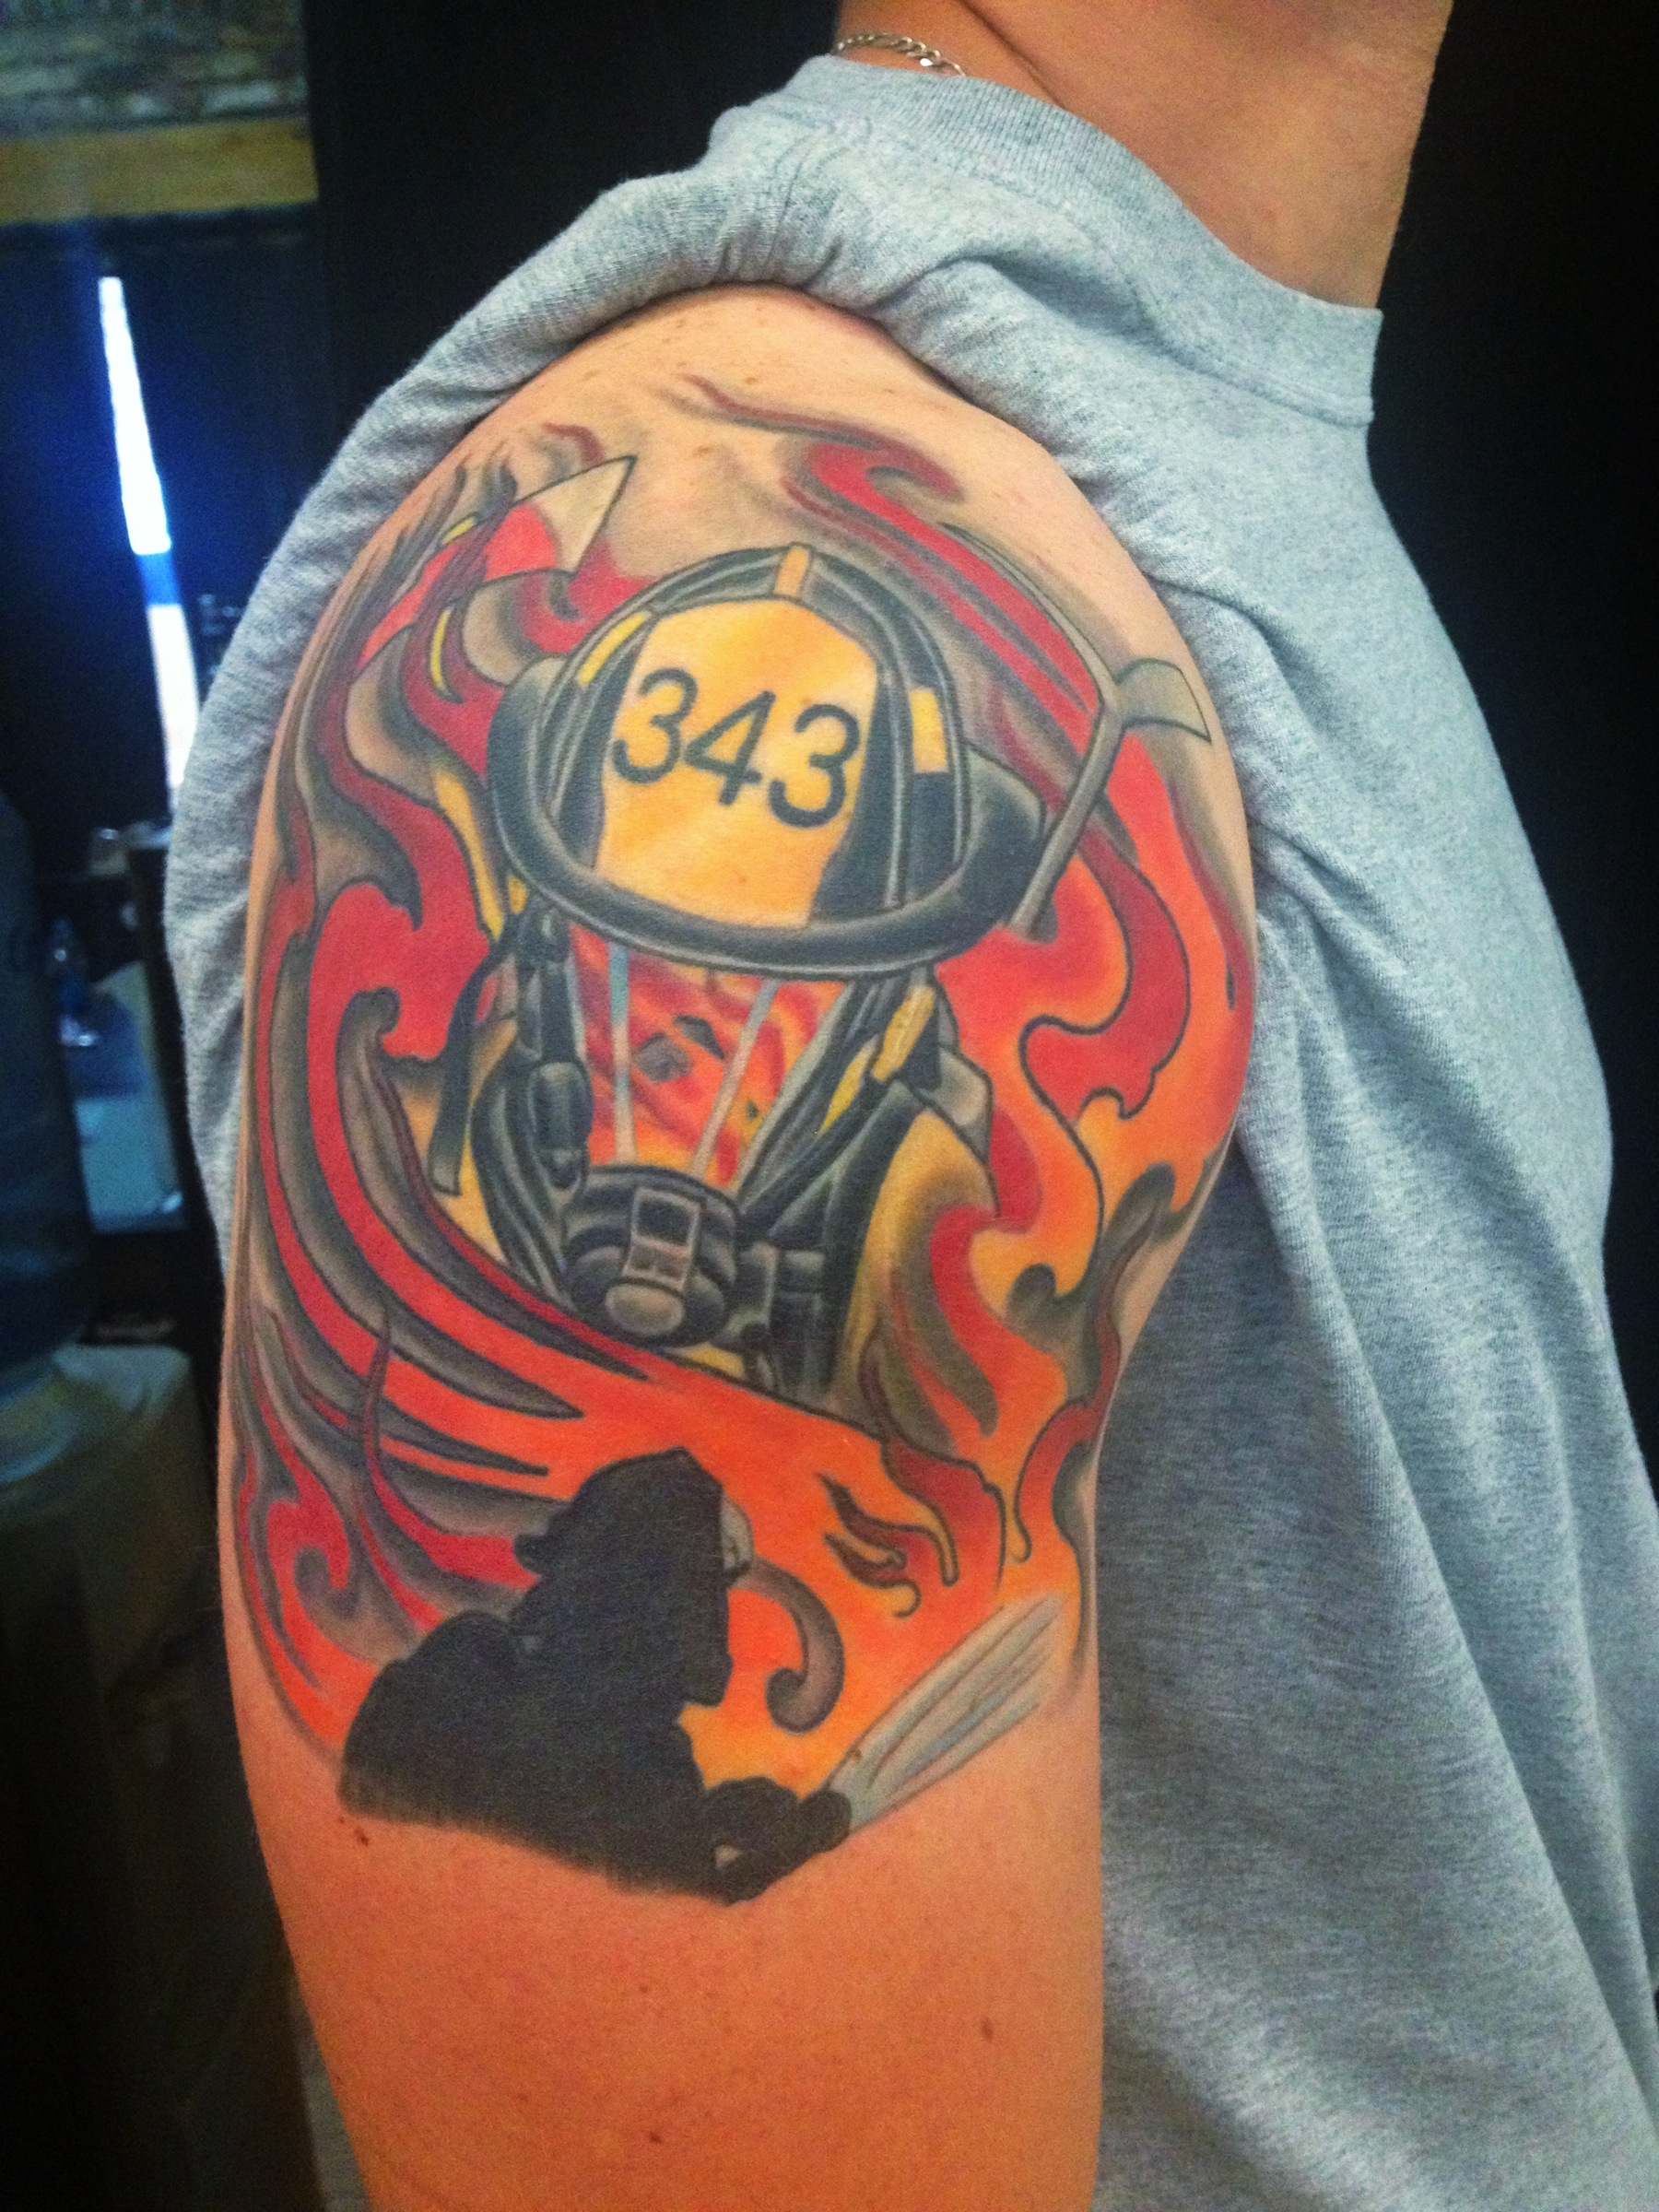 Fire Fighter Tattoo Ybor City 1603 Tattoo Tampa Josh Ideas And Designs